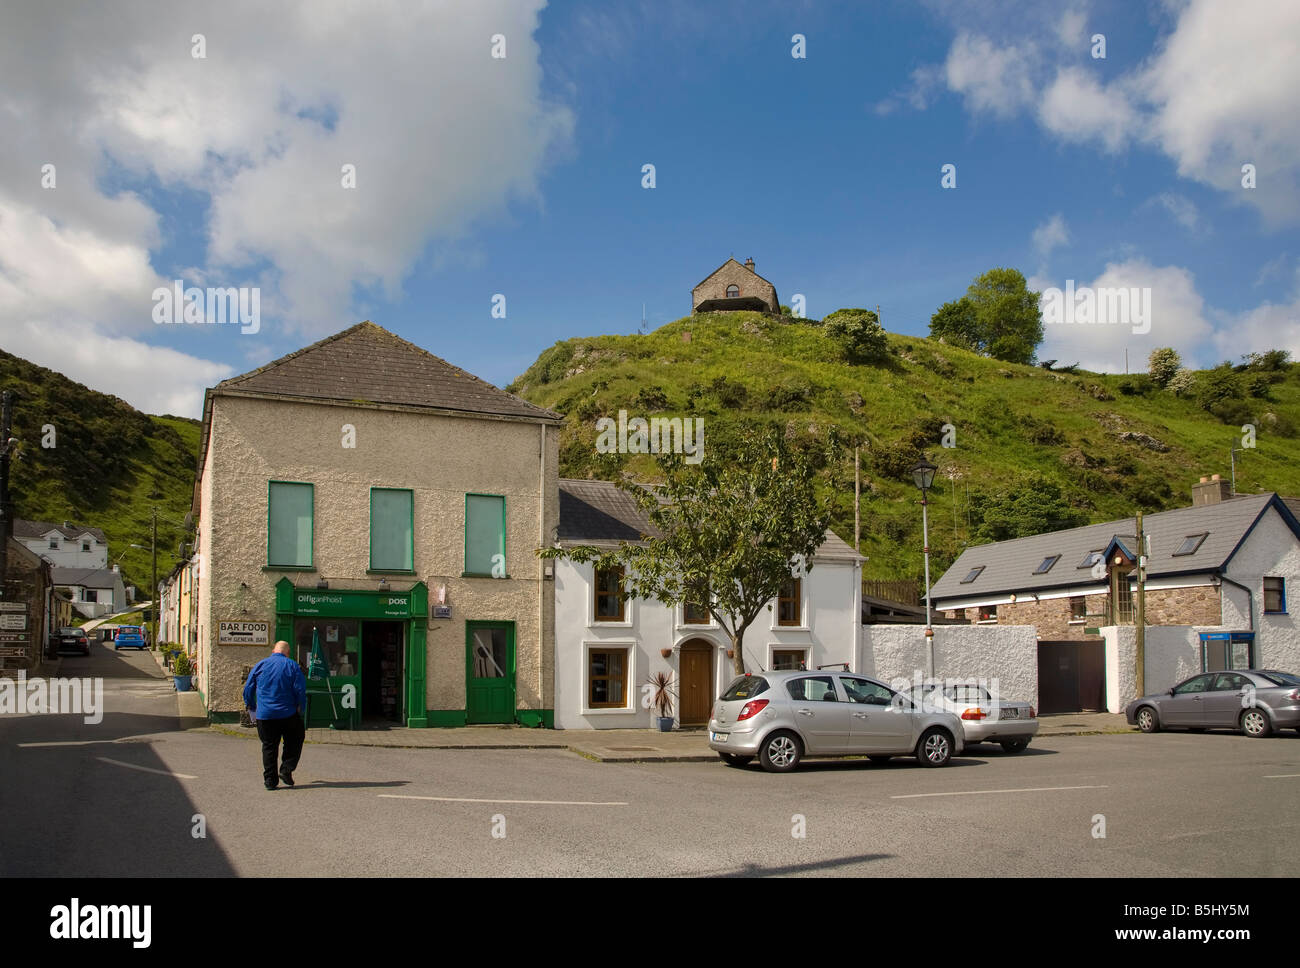 A Traditional Village Post Office in Passage East, County Waterford, Ireland Stock Photo